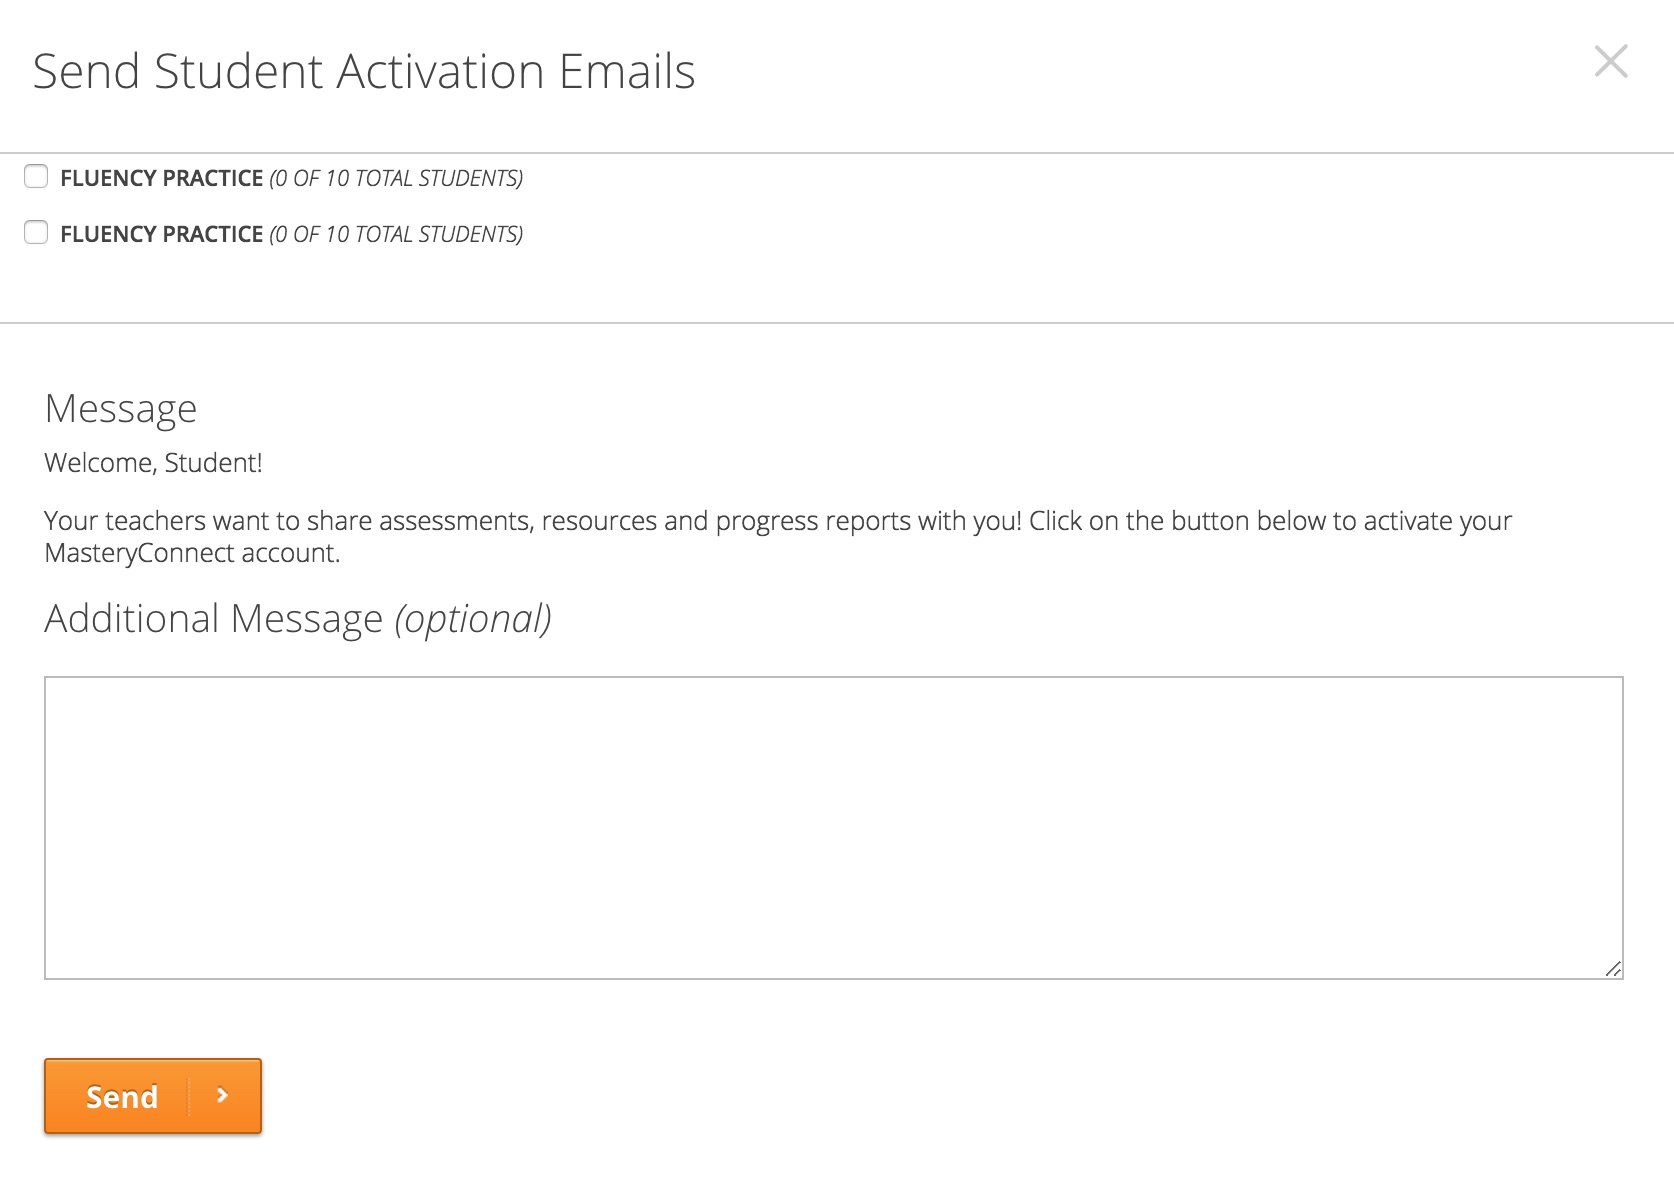 Send Student activation email dialog